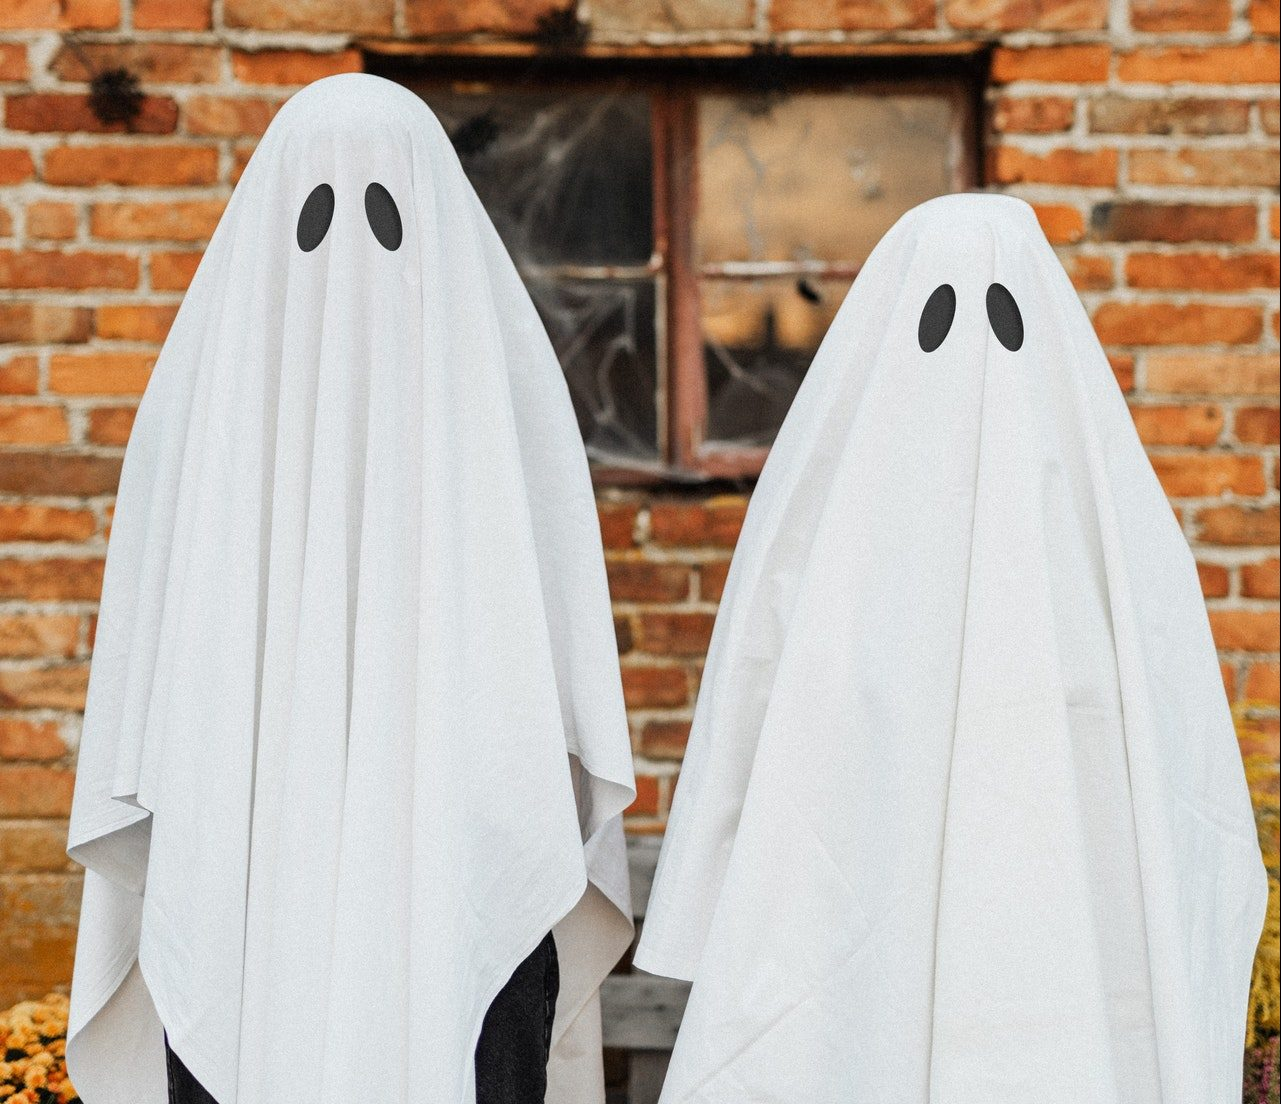 wordpress vs ghost features